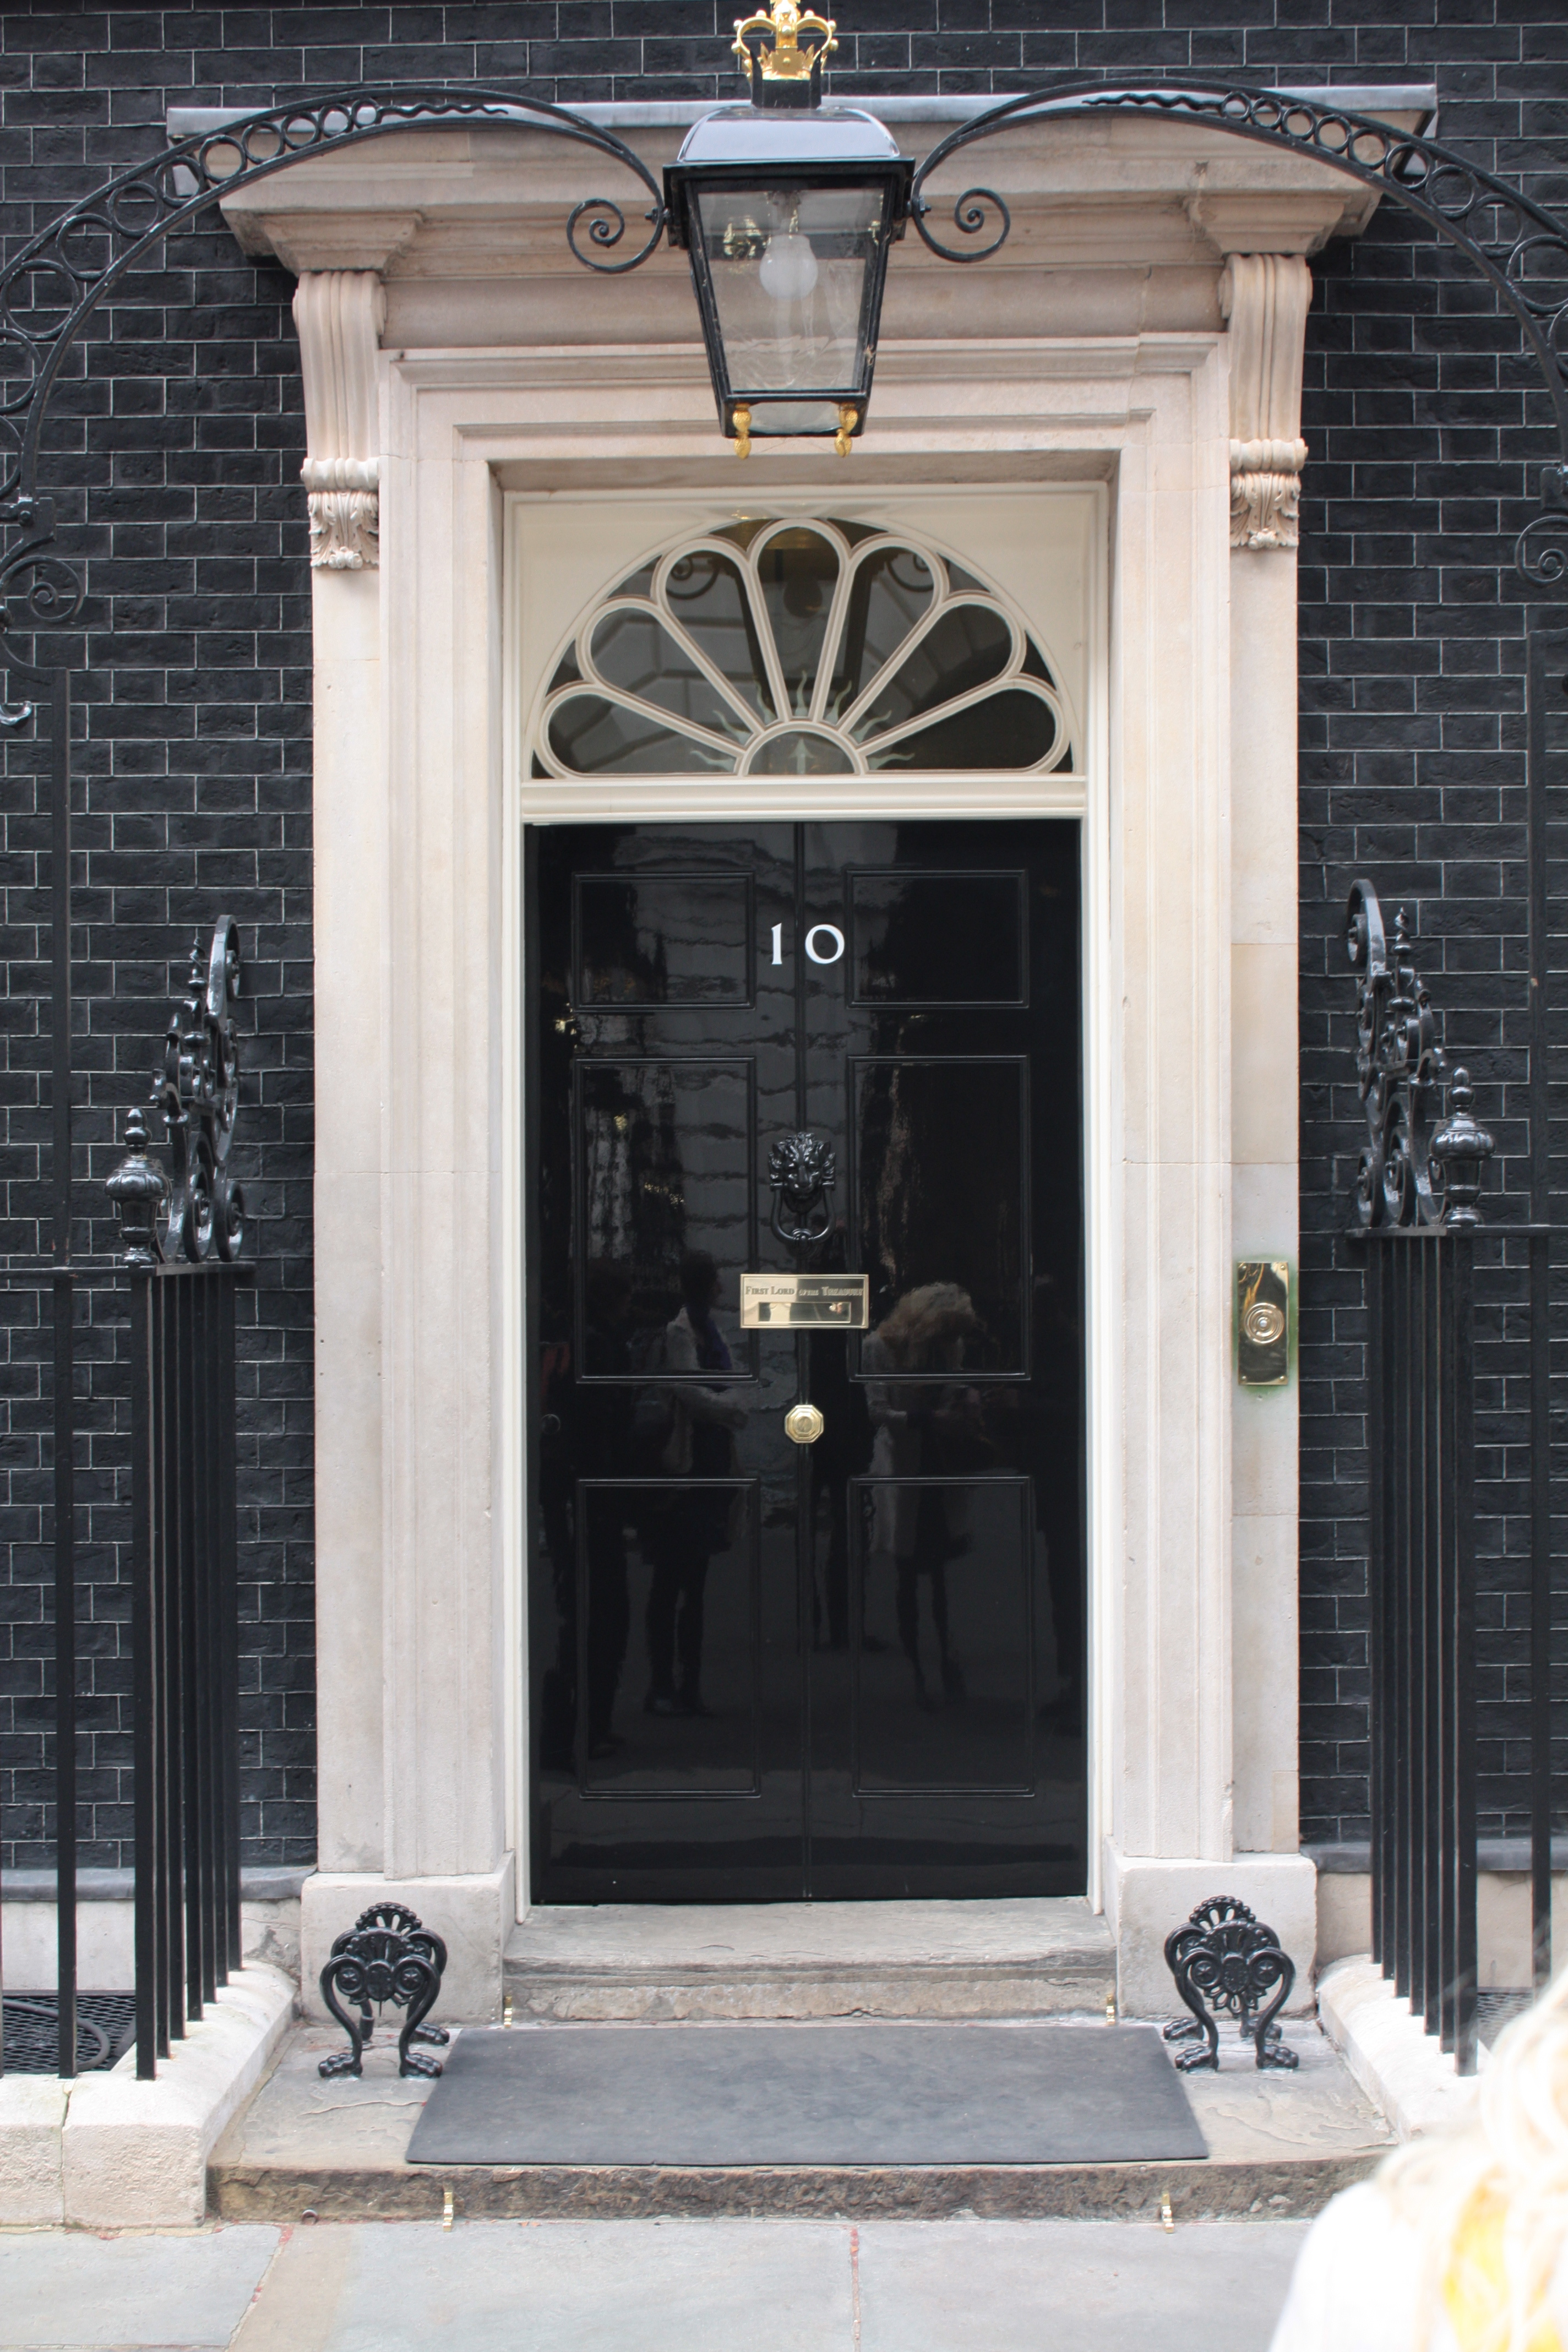 file 10 downing street wikimedia commons